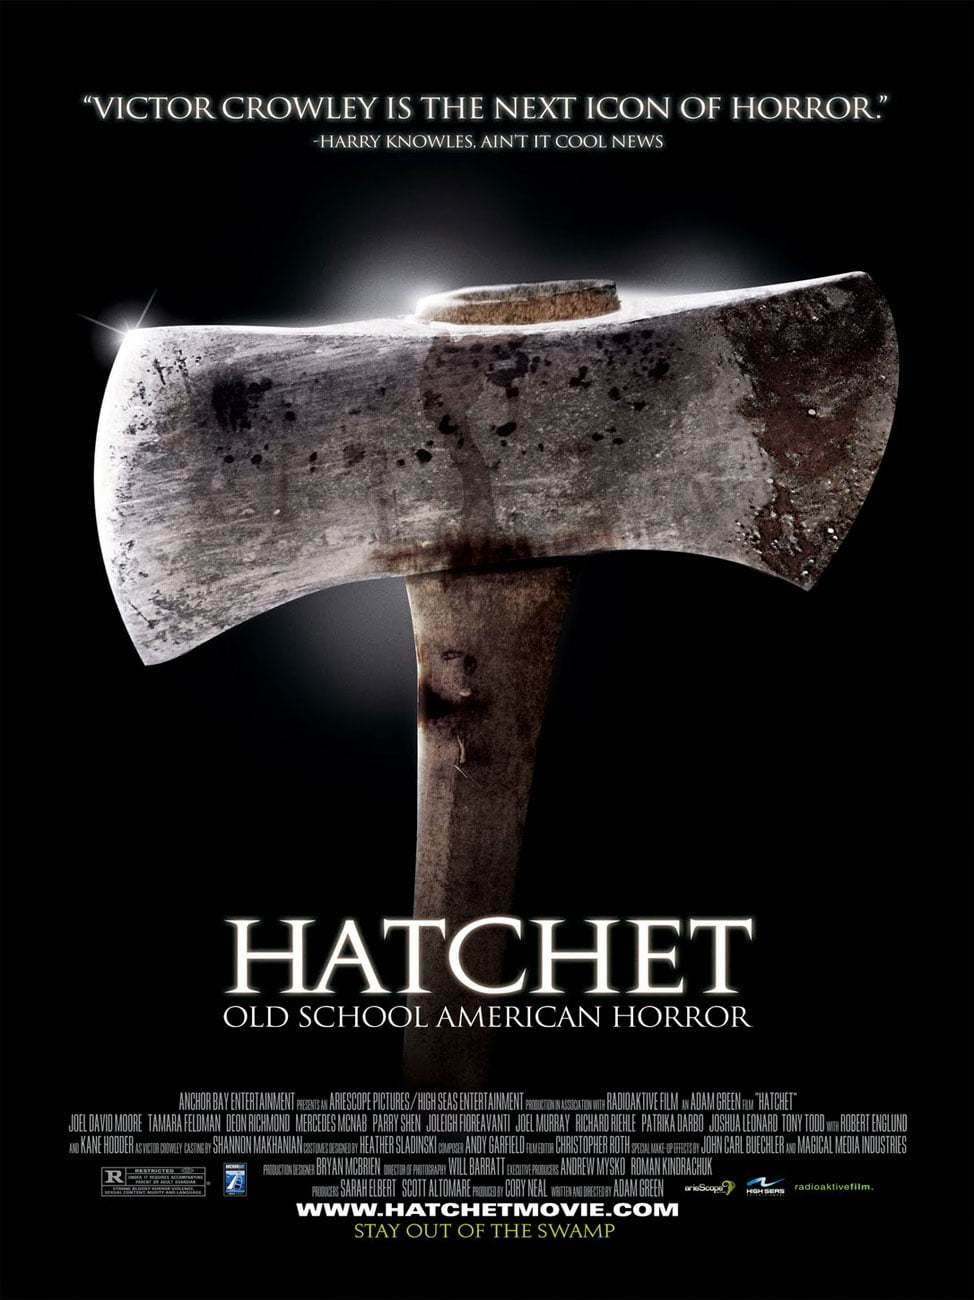 hatchet 2006 movie poster 3